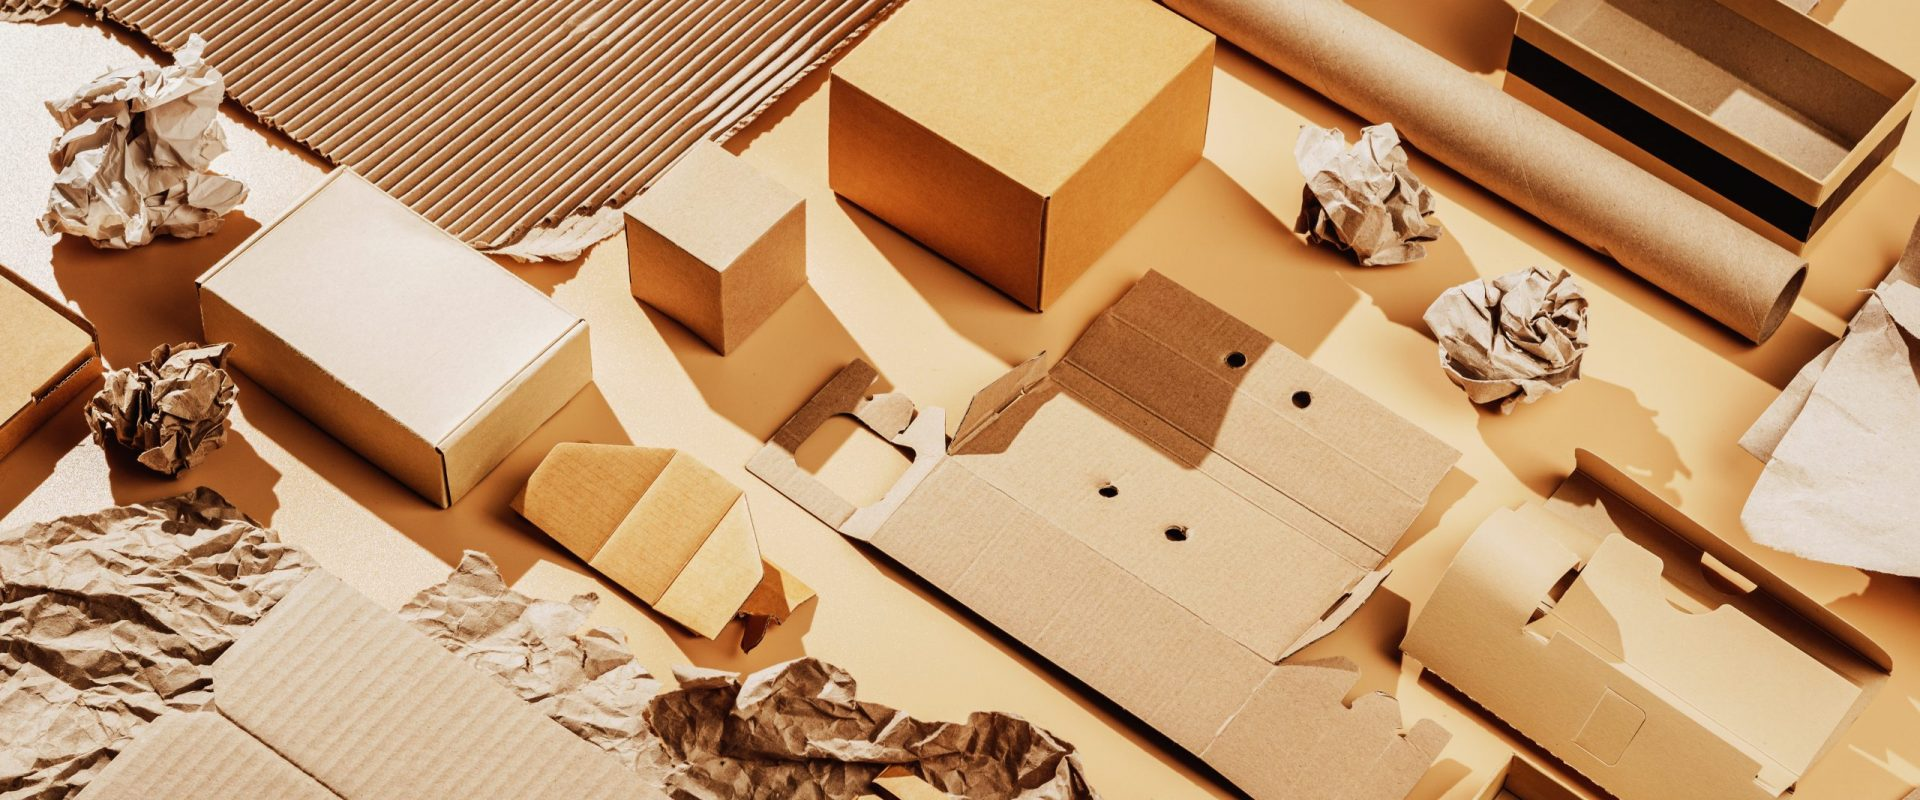 Used cardboard and paper for recycling, secondary raw materials